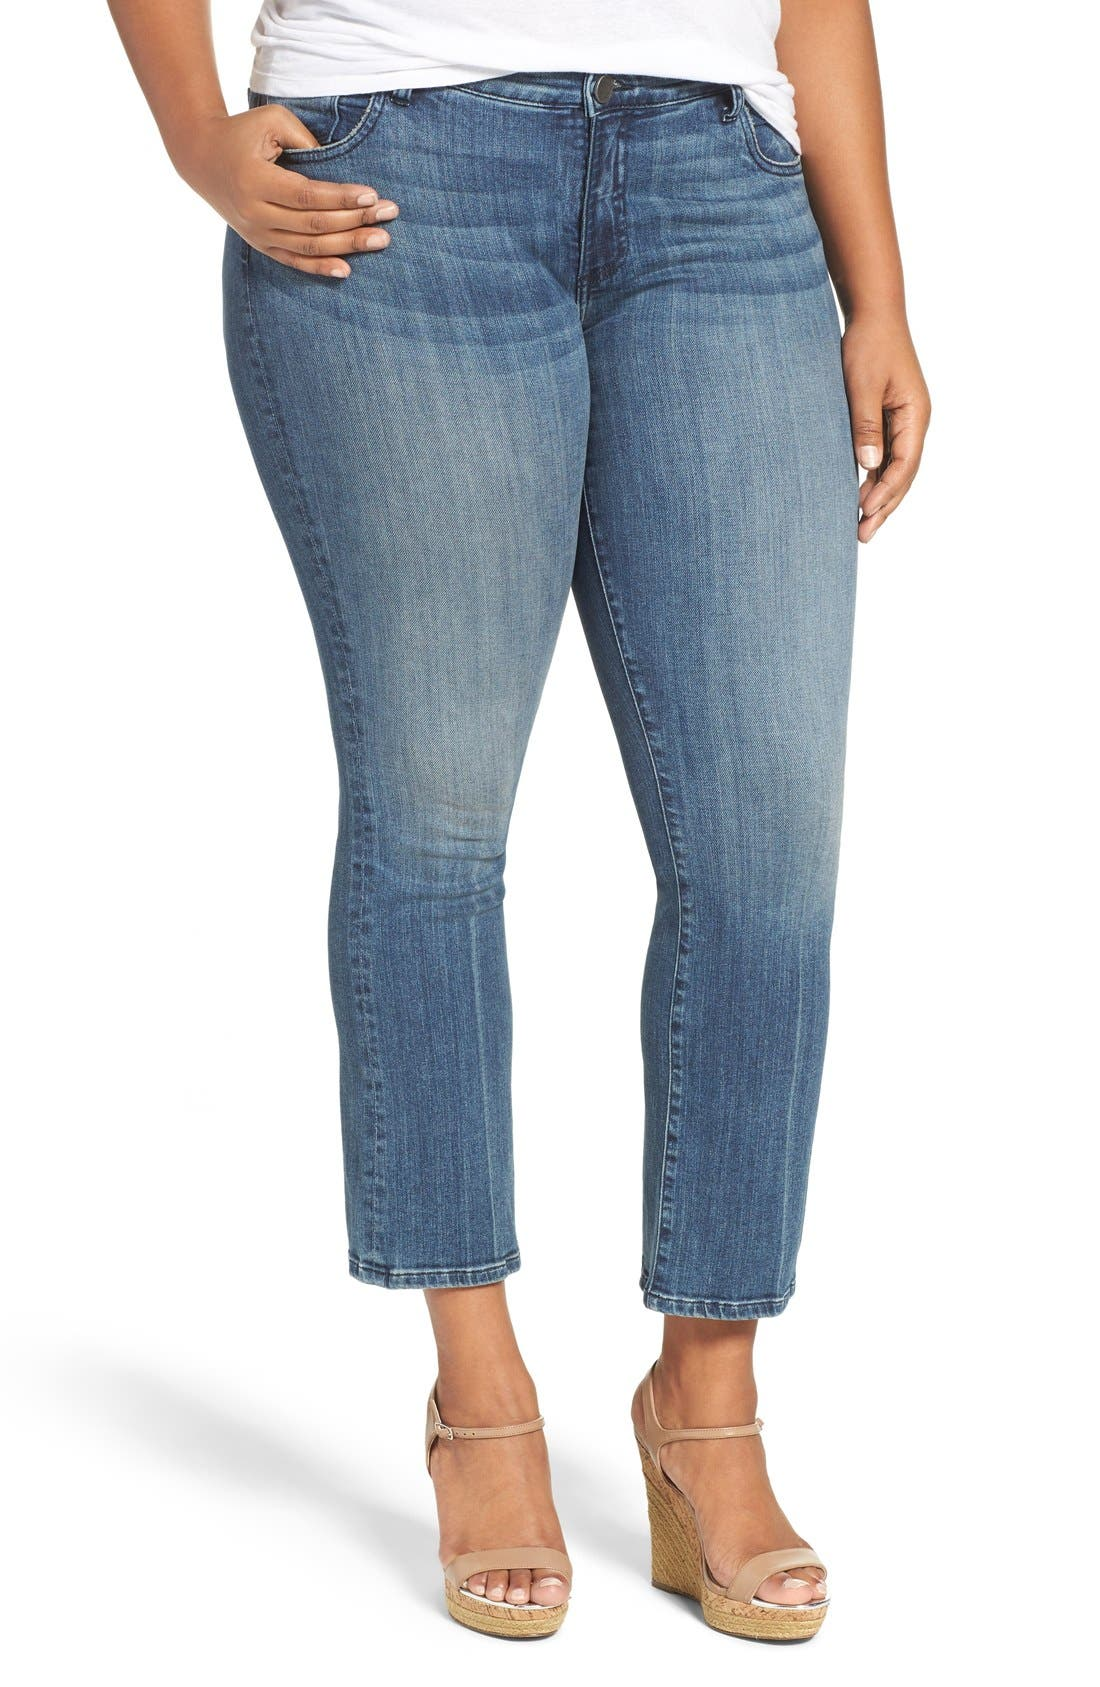 'REESE' CROP FLARE LEG JEANS